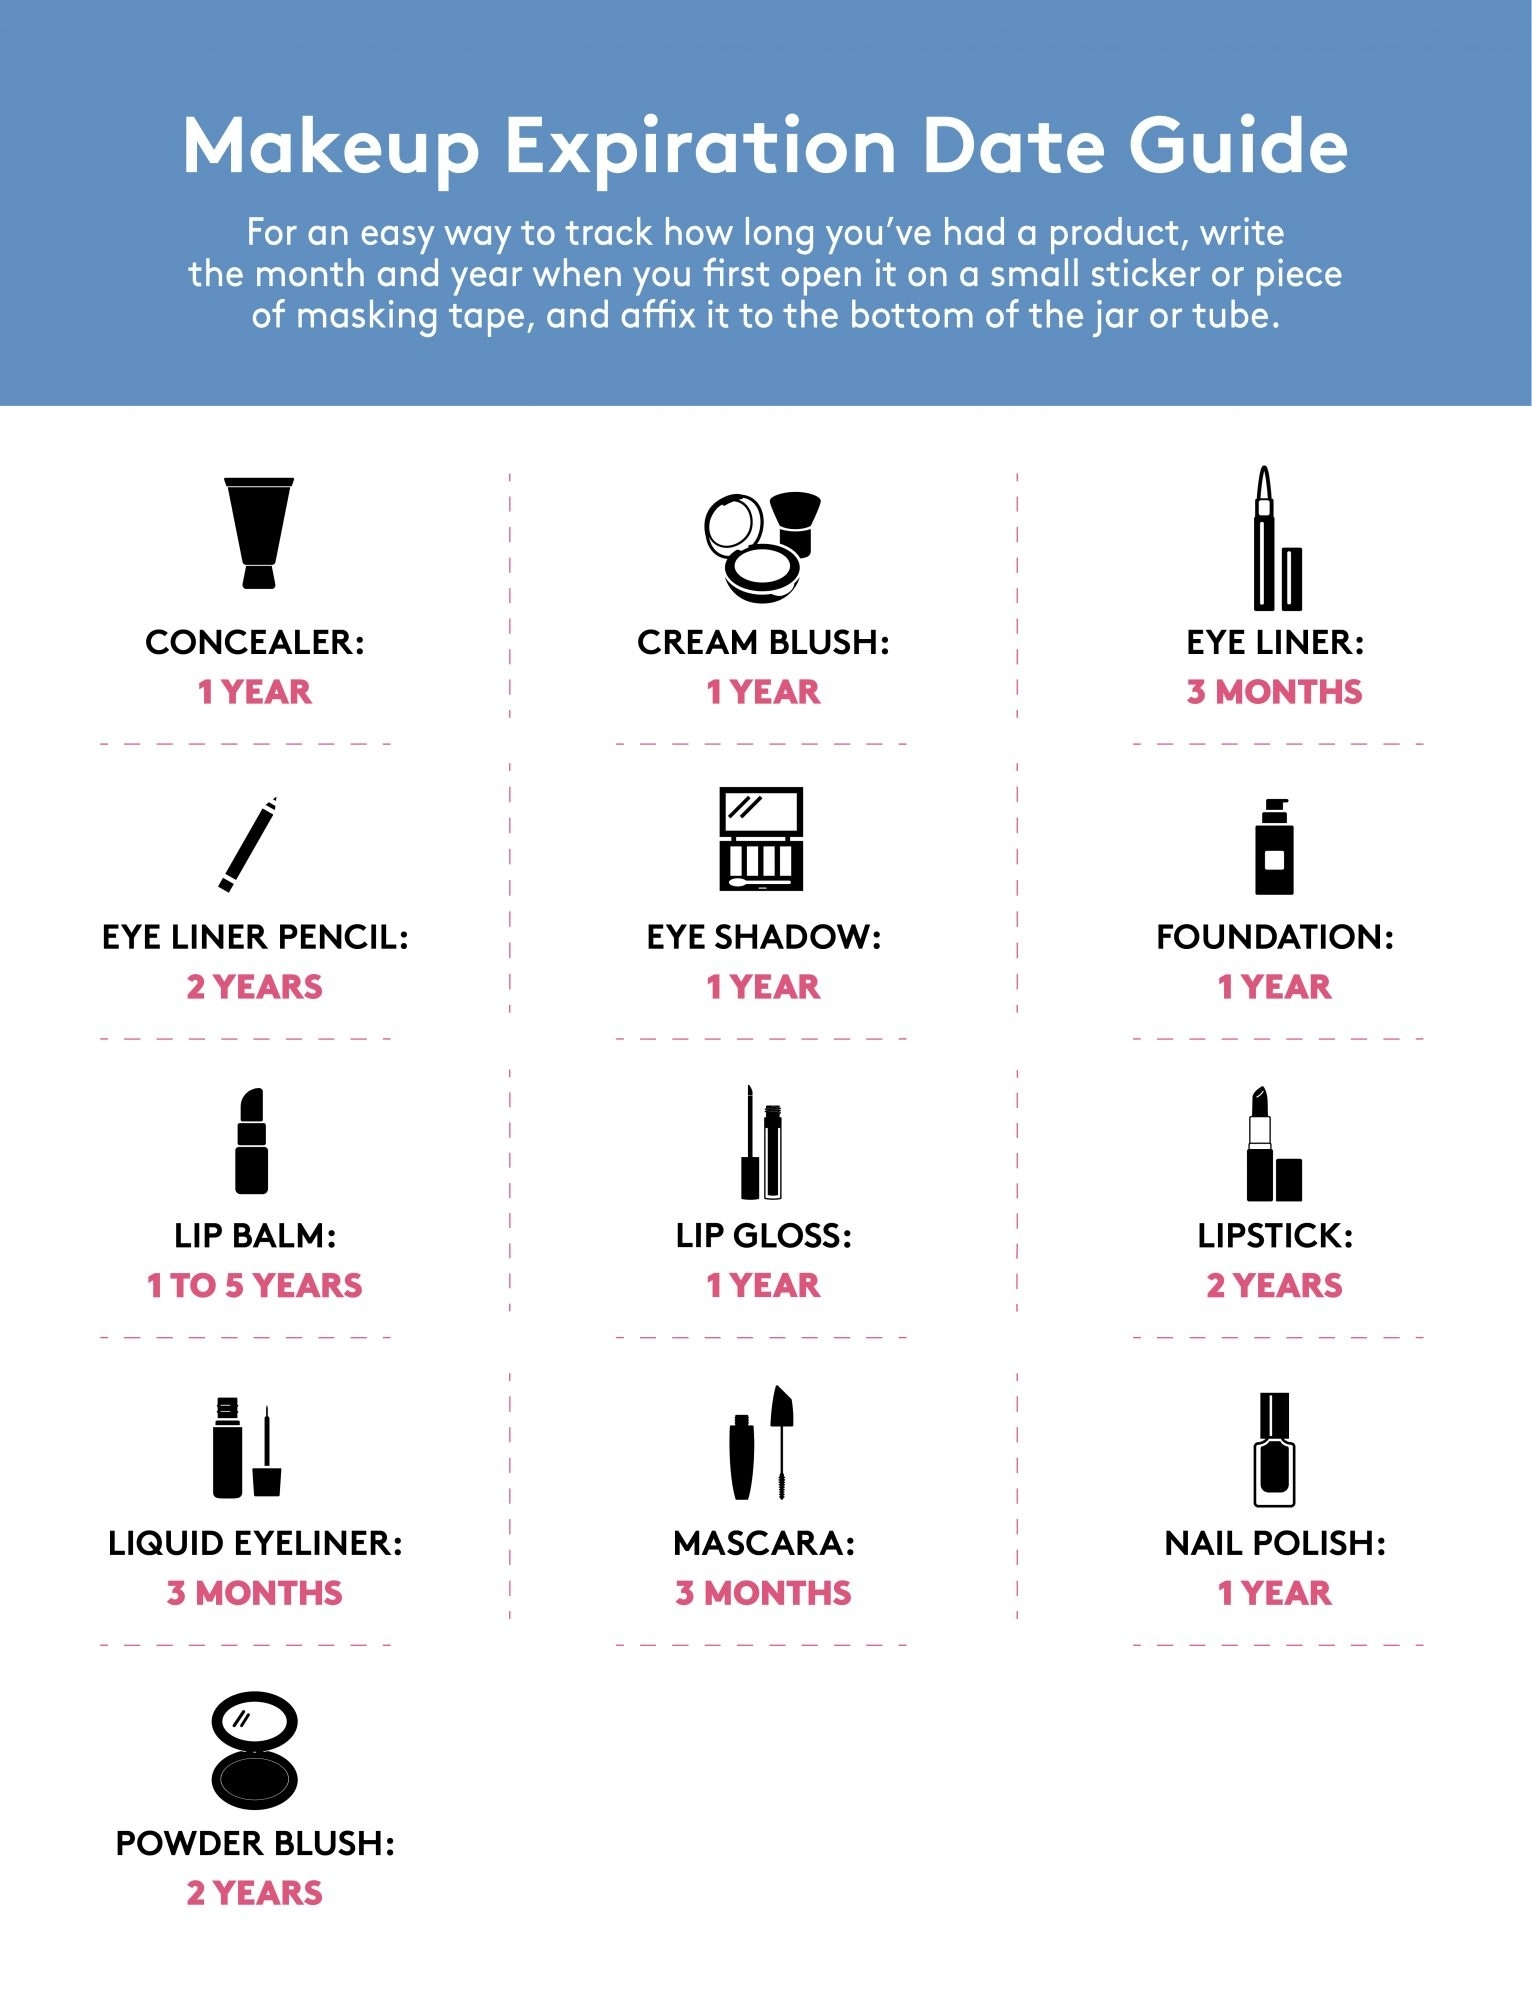 The Complete Guide To Makeup Expiration Dates: When To Throw